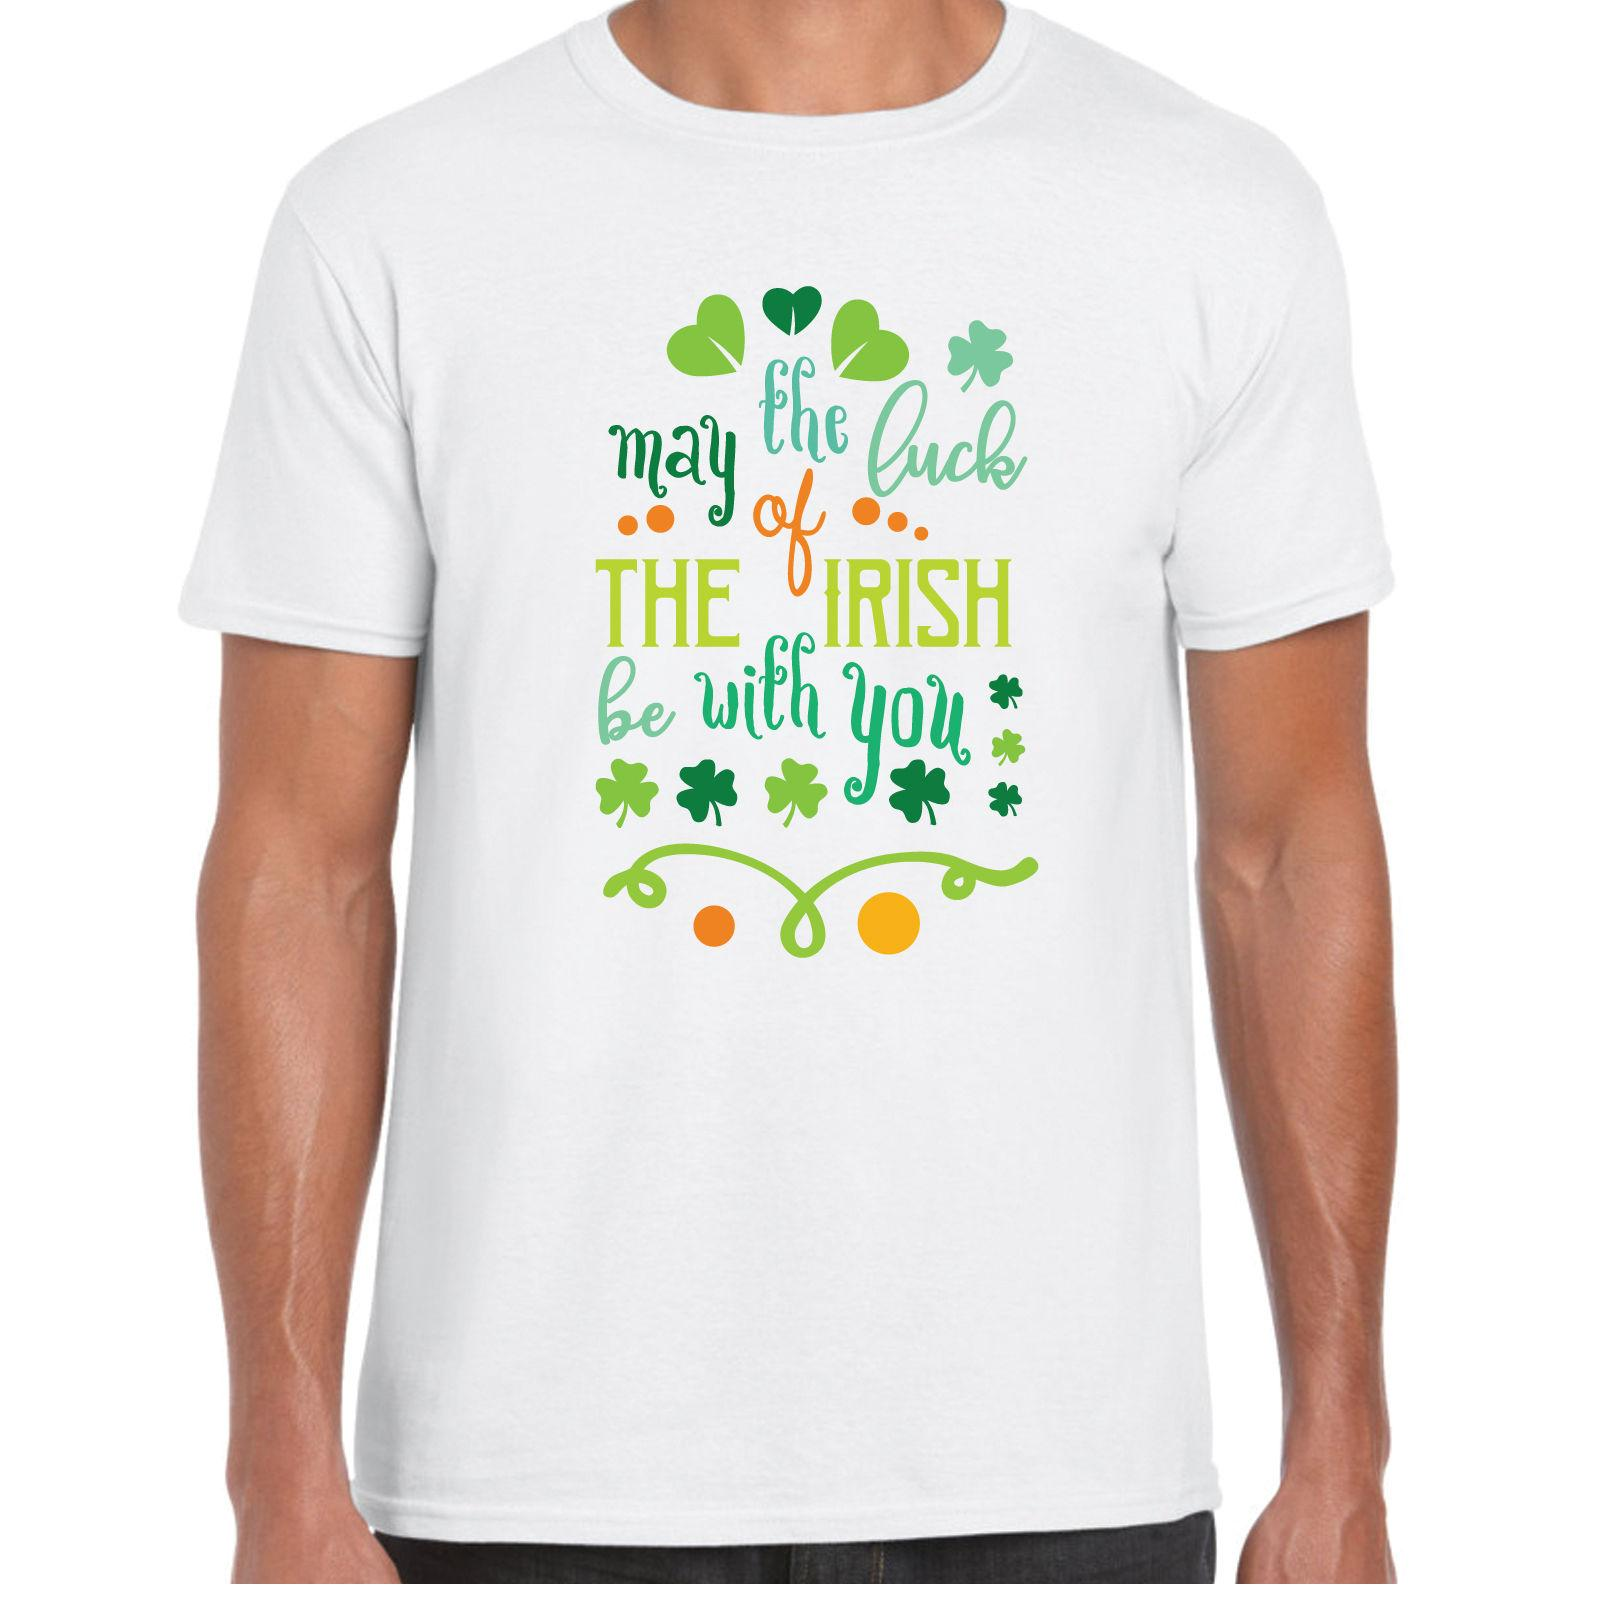 1c216123e May The Luck Of The Irish Be With You MensT Shirt St Patricks Day Irish  Gift Design And Buy T Shirts Tee Shirt Online Shopping From Tshirtemperor,  ...